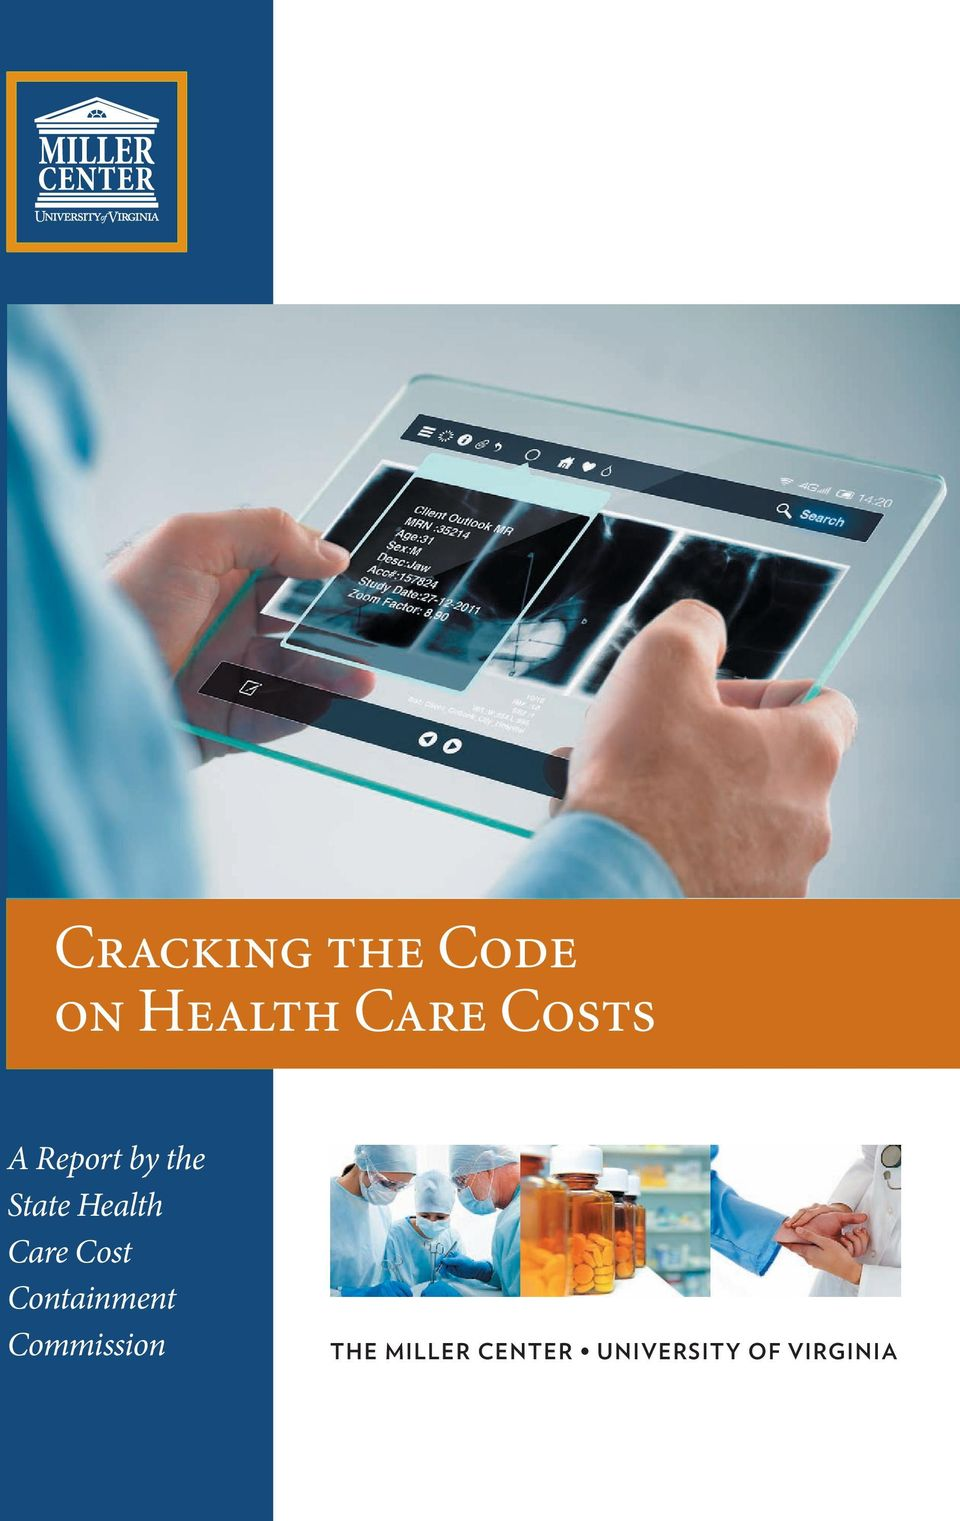 State State Health Health Care Care Cost Cost Containment